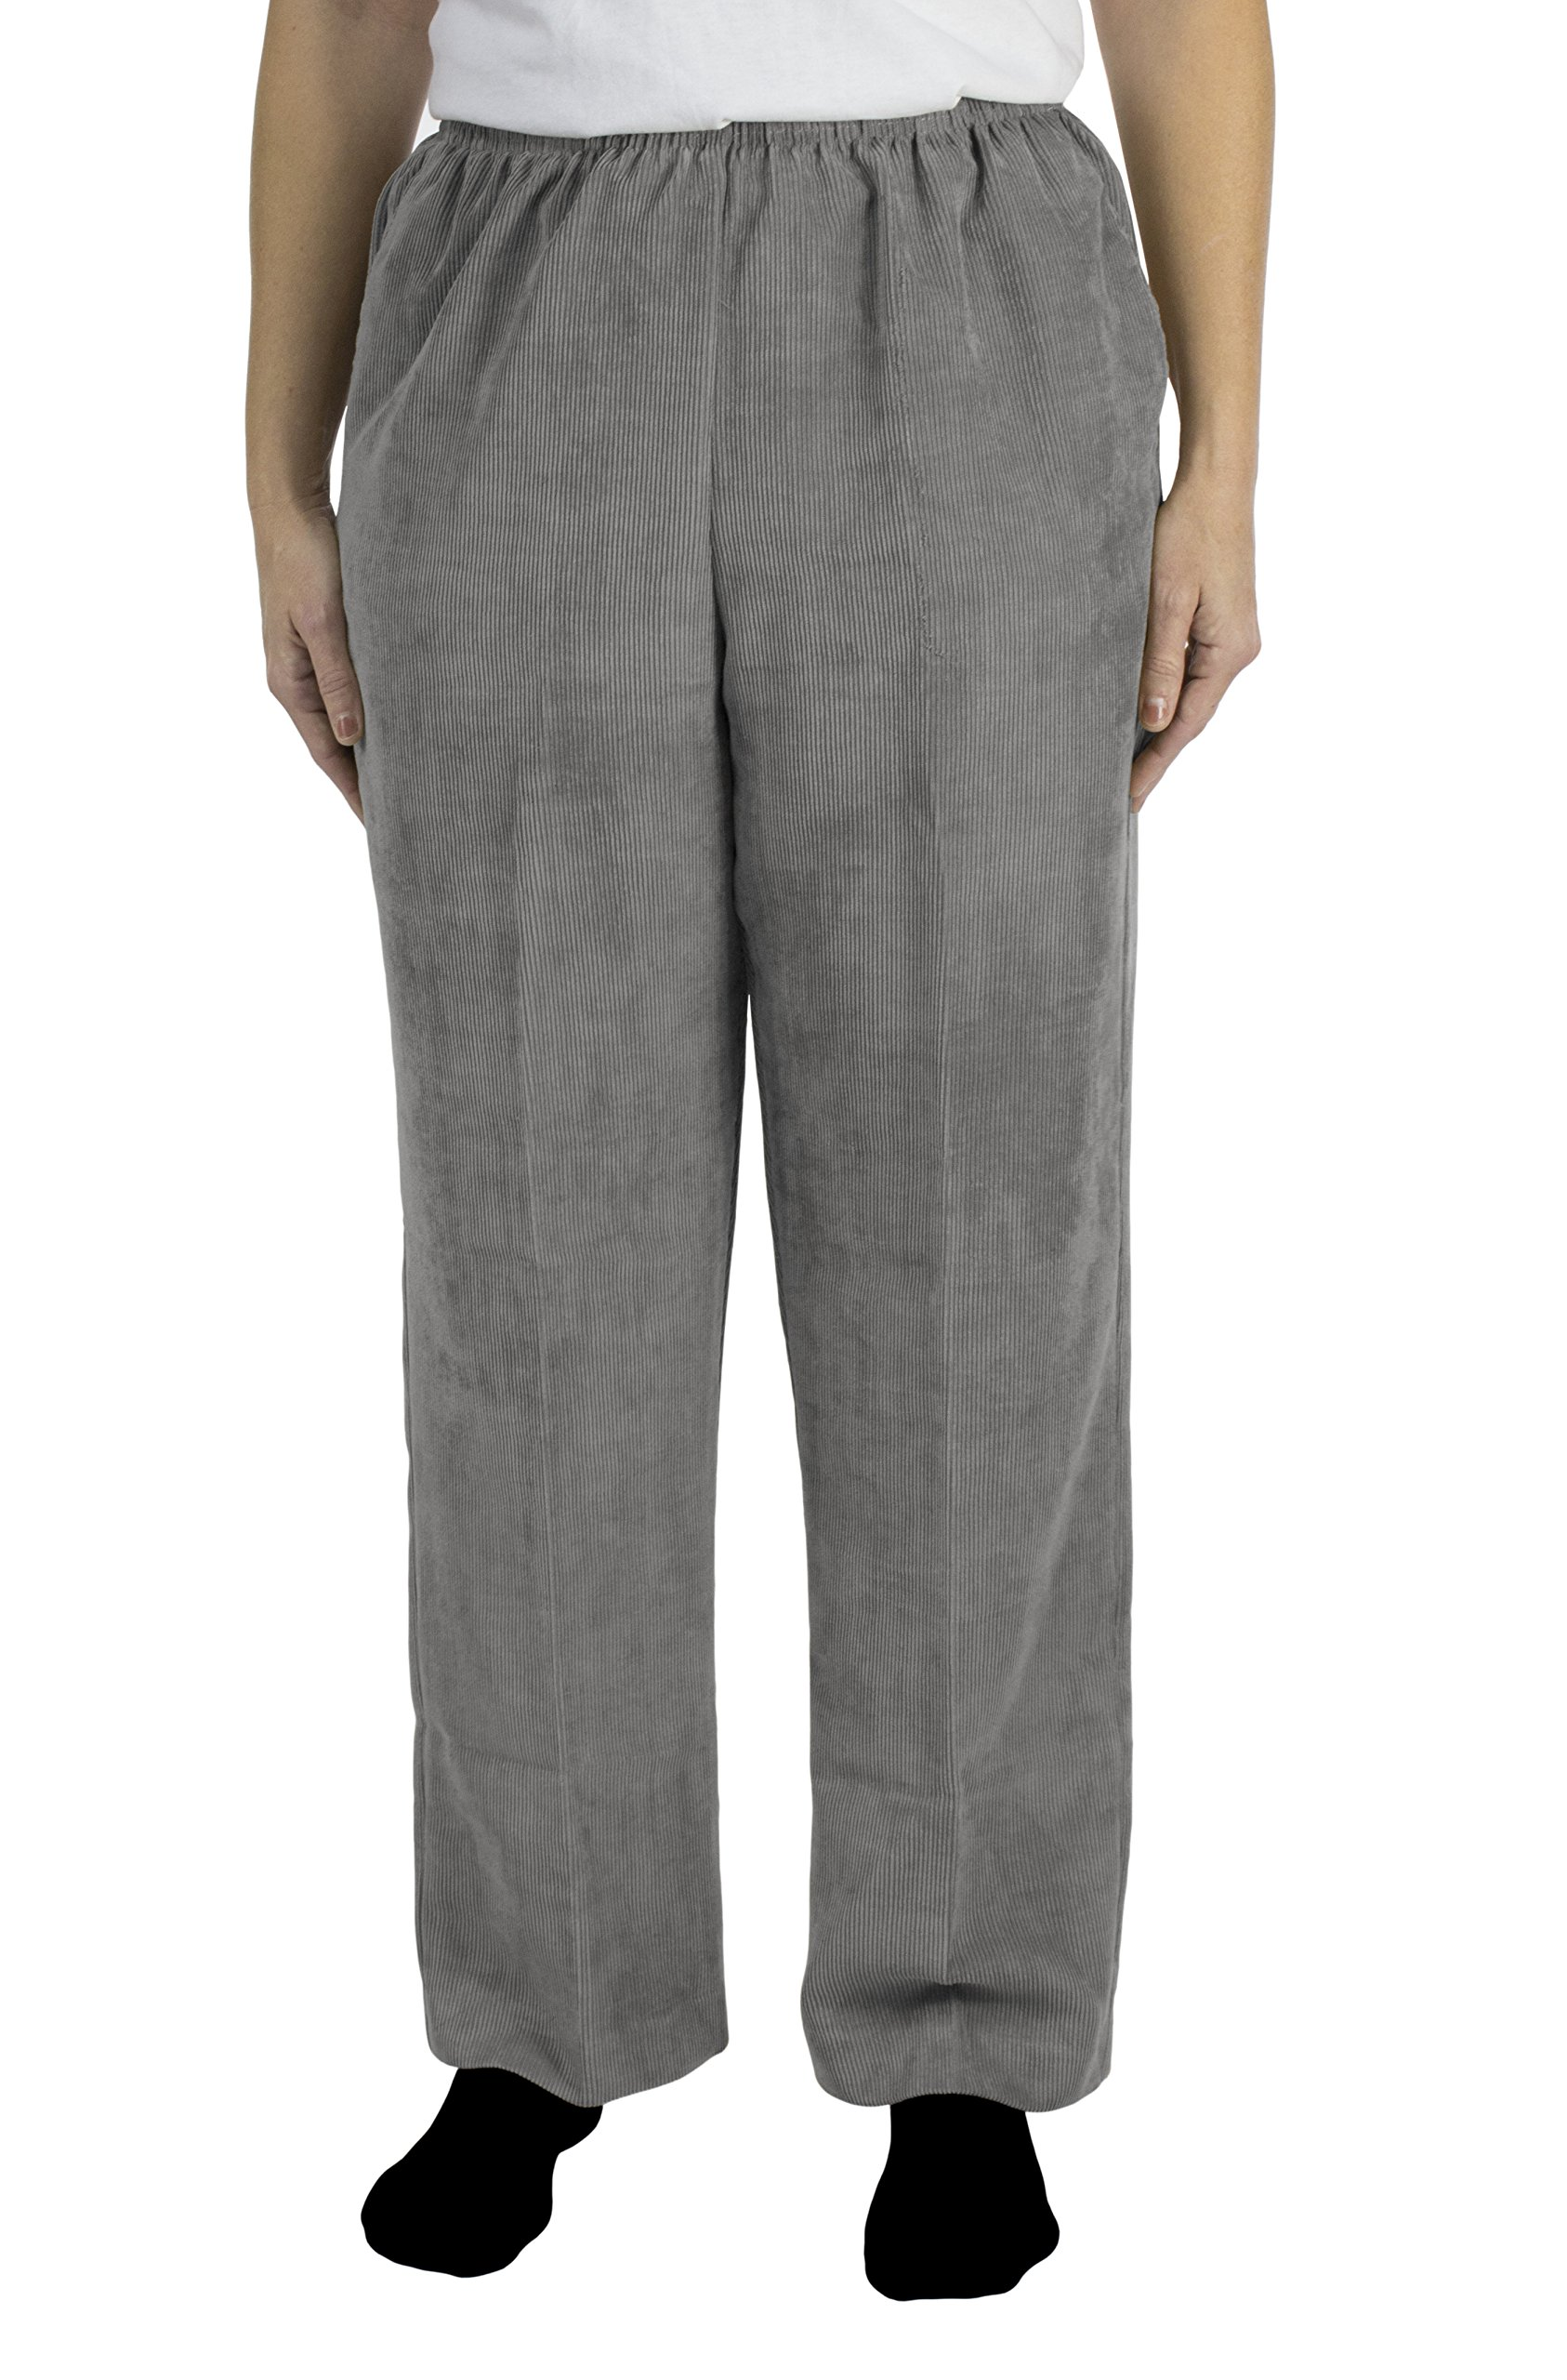 Alfred Dunner C4 Classics Missy Style 06101 Proportioned Medium Pant Grey Size 16